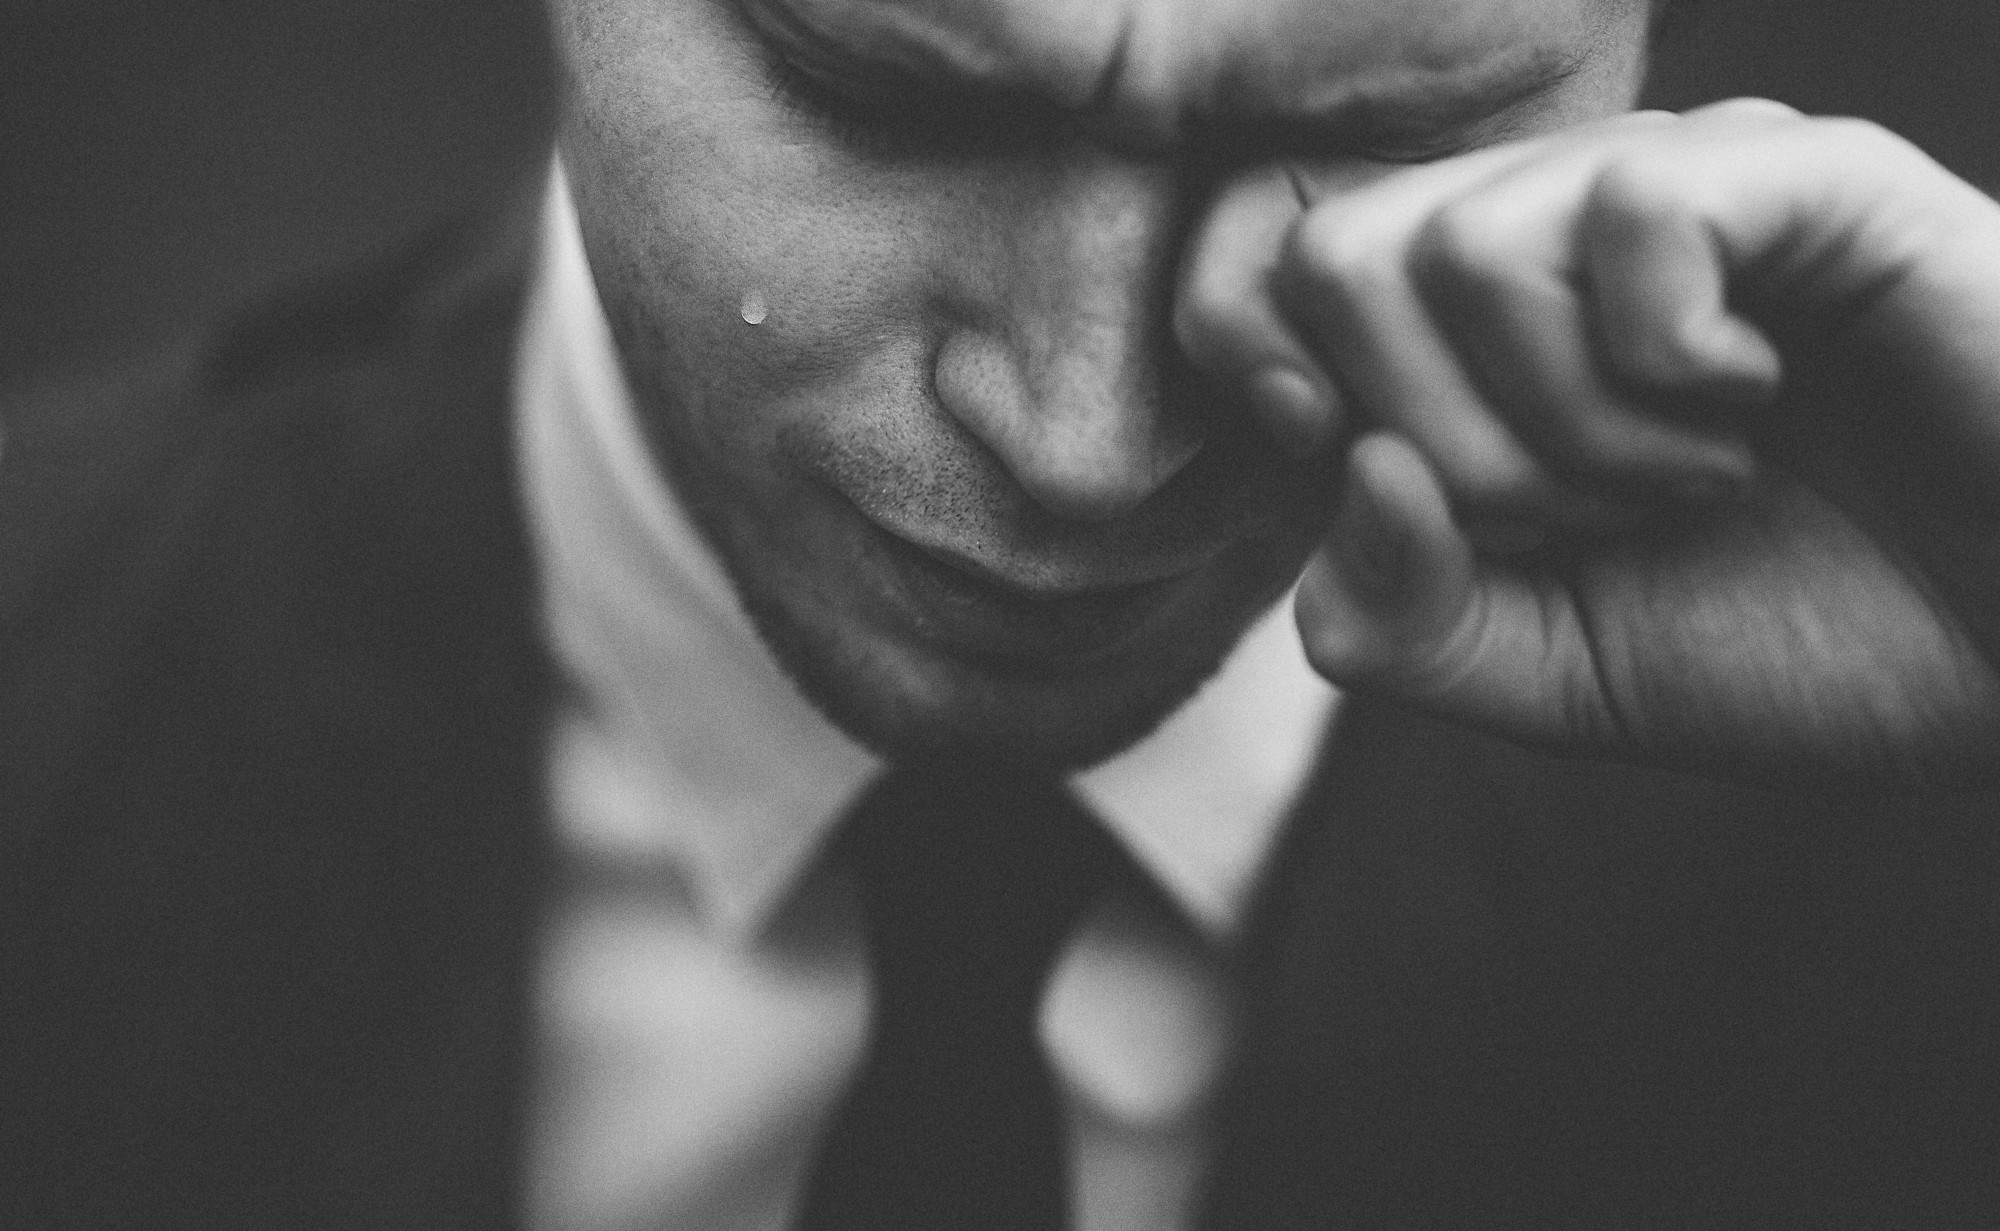 A man in suit is crying, close up face shot, showing a tear falling down on his right cheek, while he rubs his left eye.